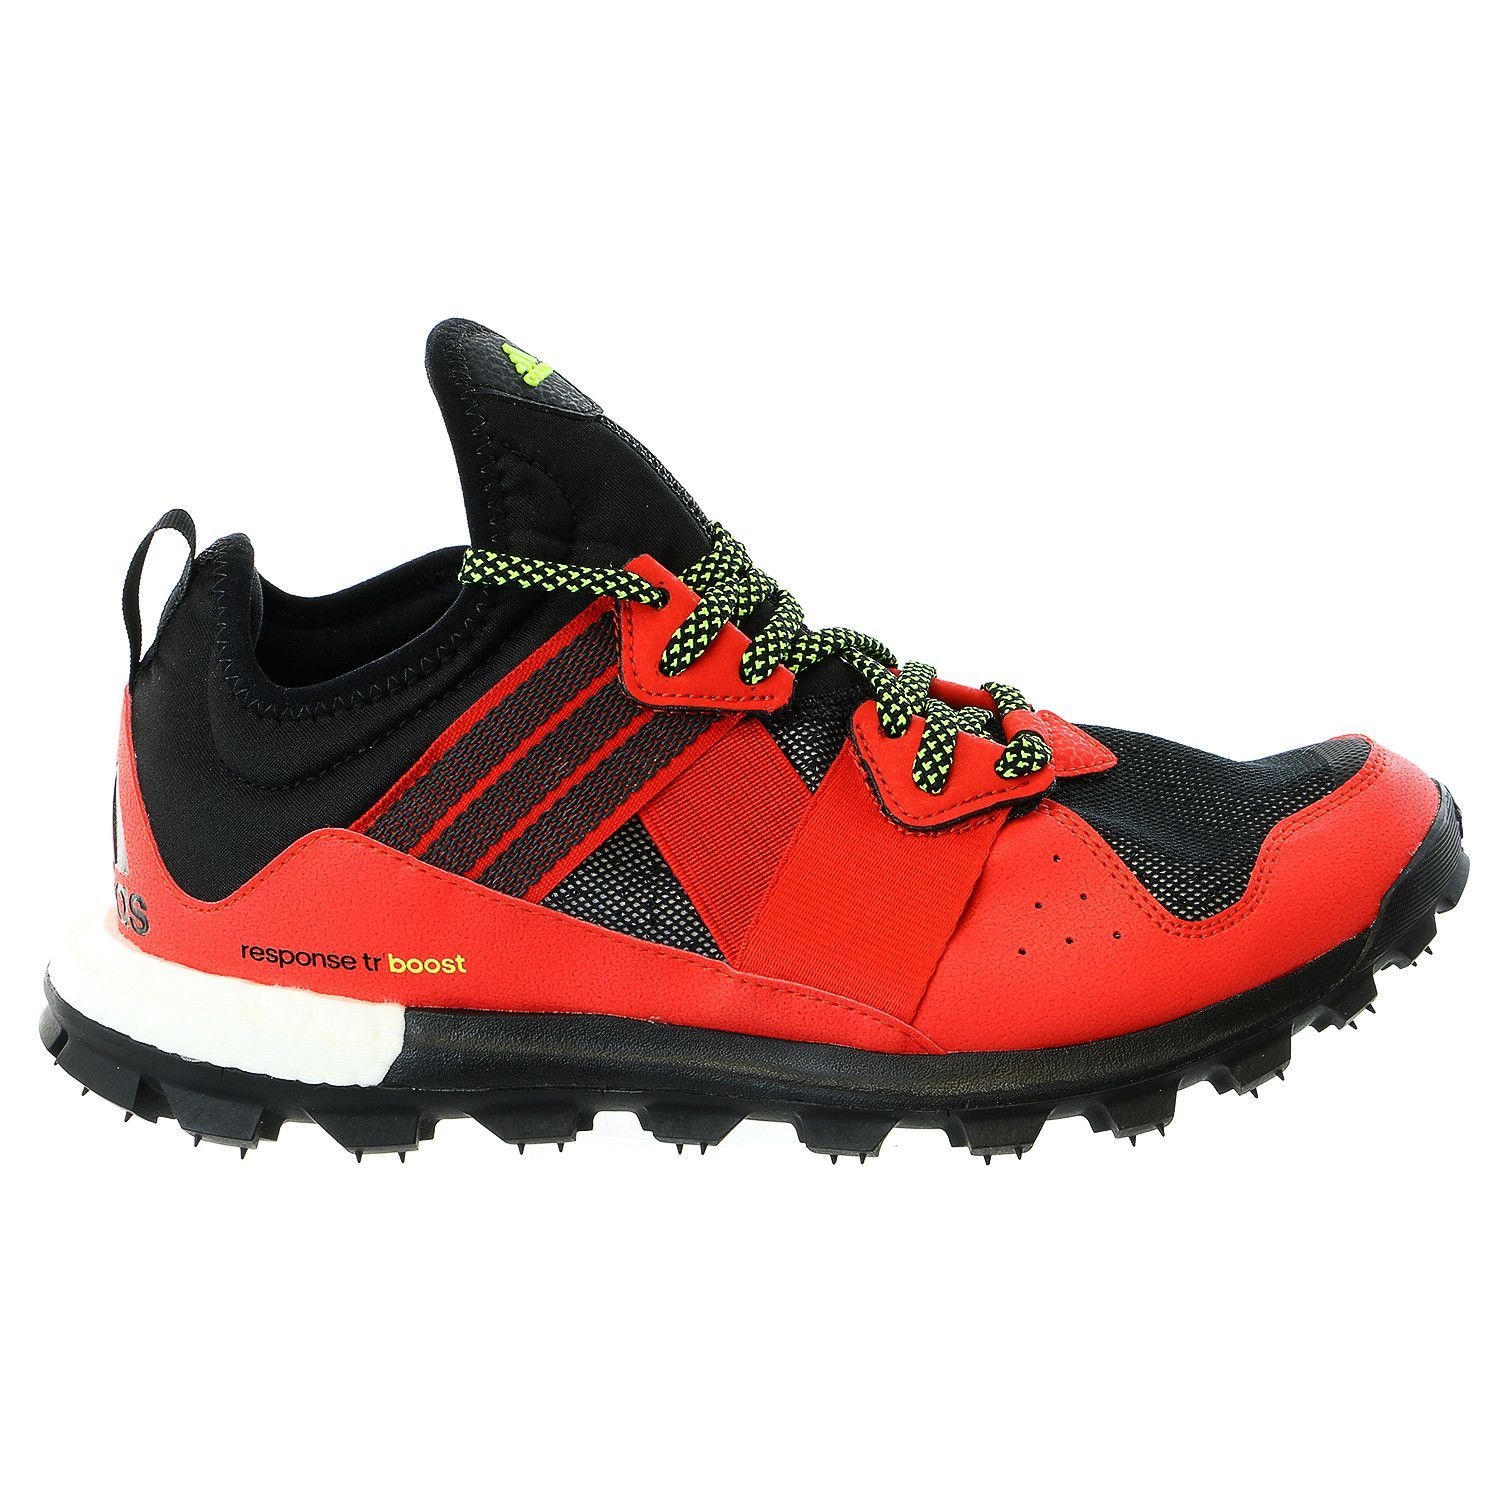 7ff42b35e5008a Adidas Outdoor Response Trail Boost Thunder Running Shoe - Mens ...